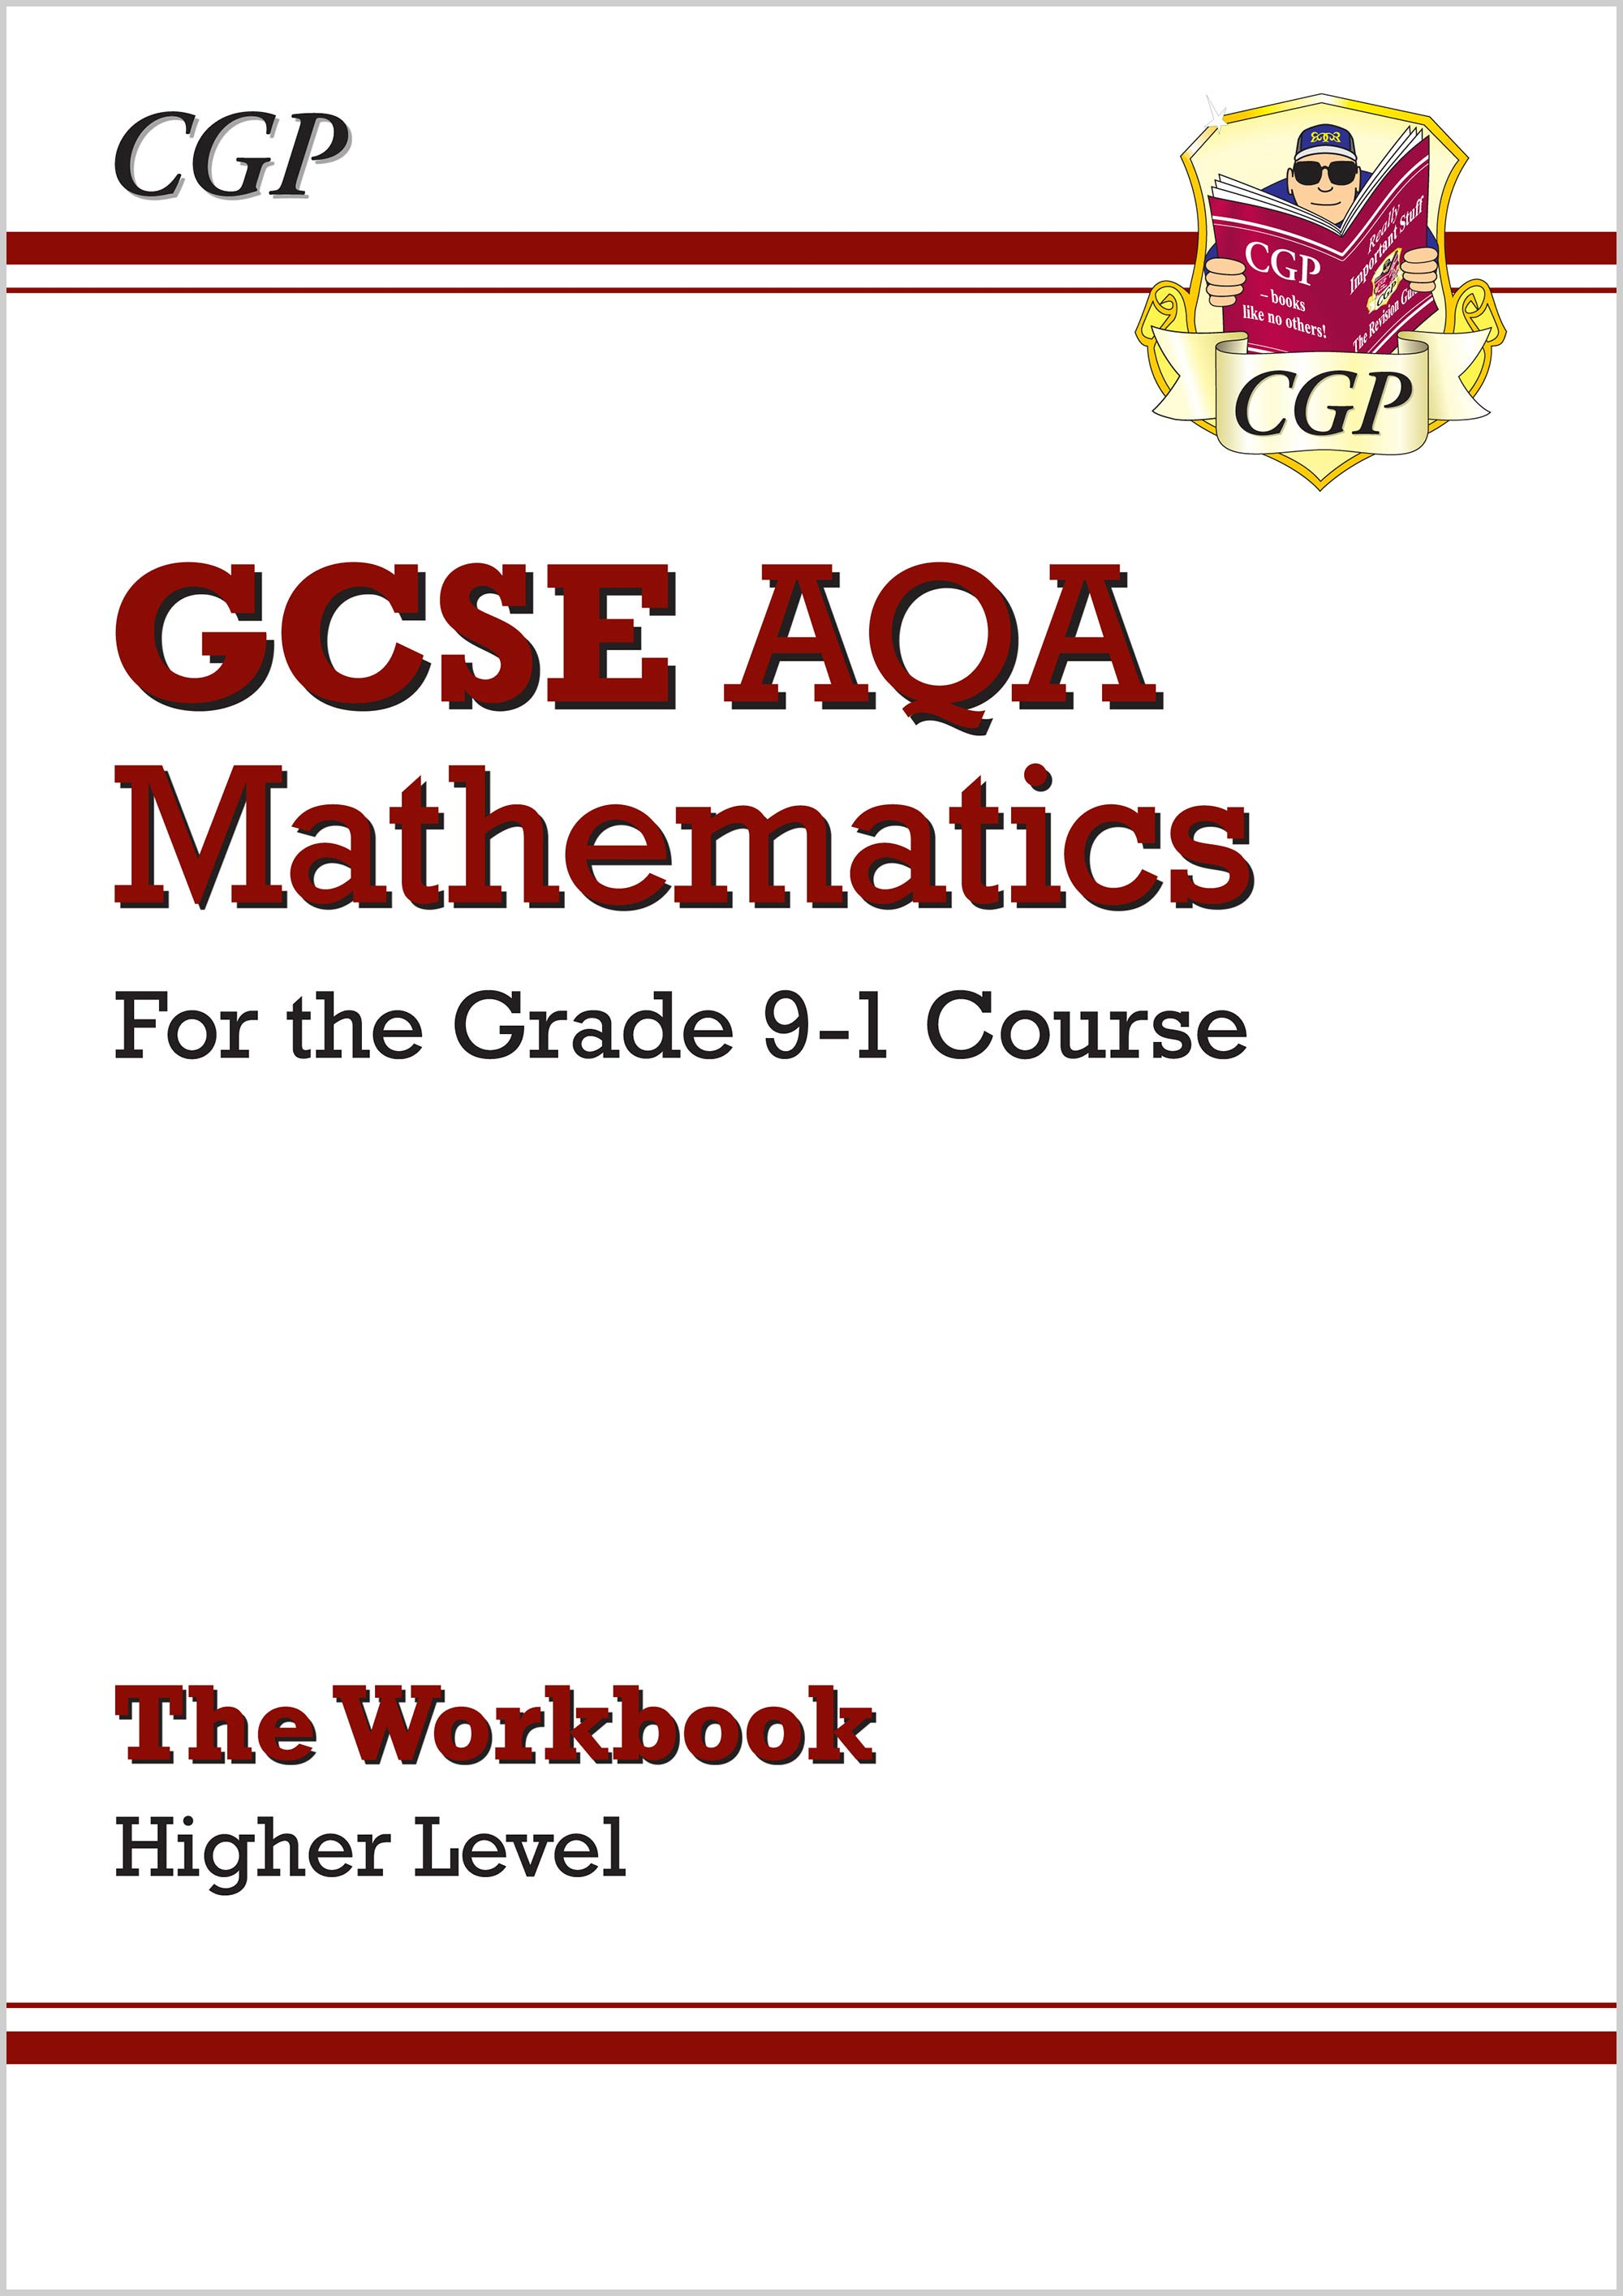 MQHW46 - GCSE Maths AQA Workbook: Higher - for the Grade 9-1 Course